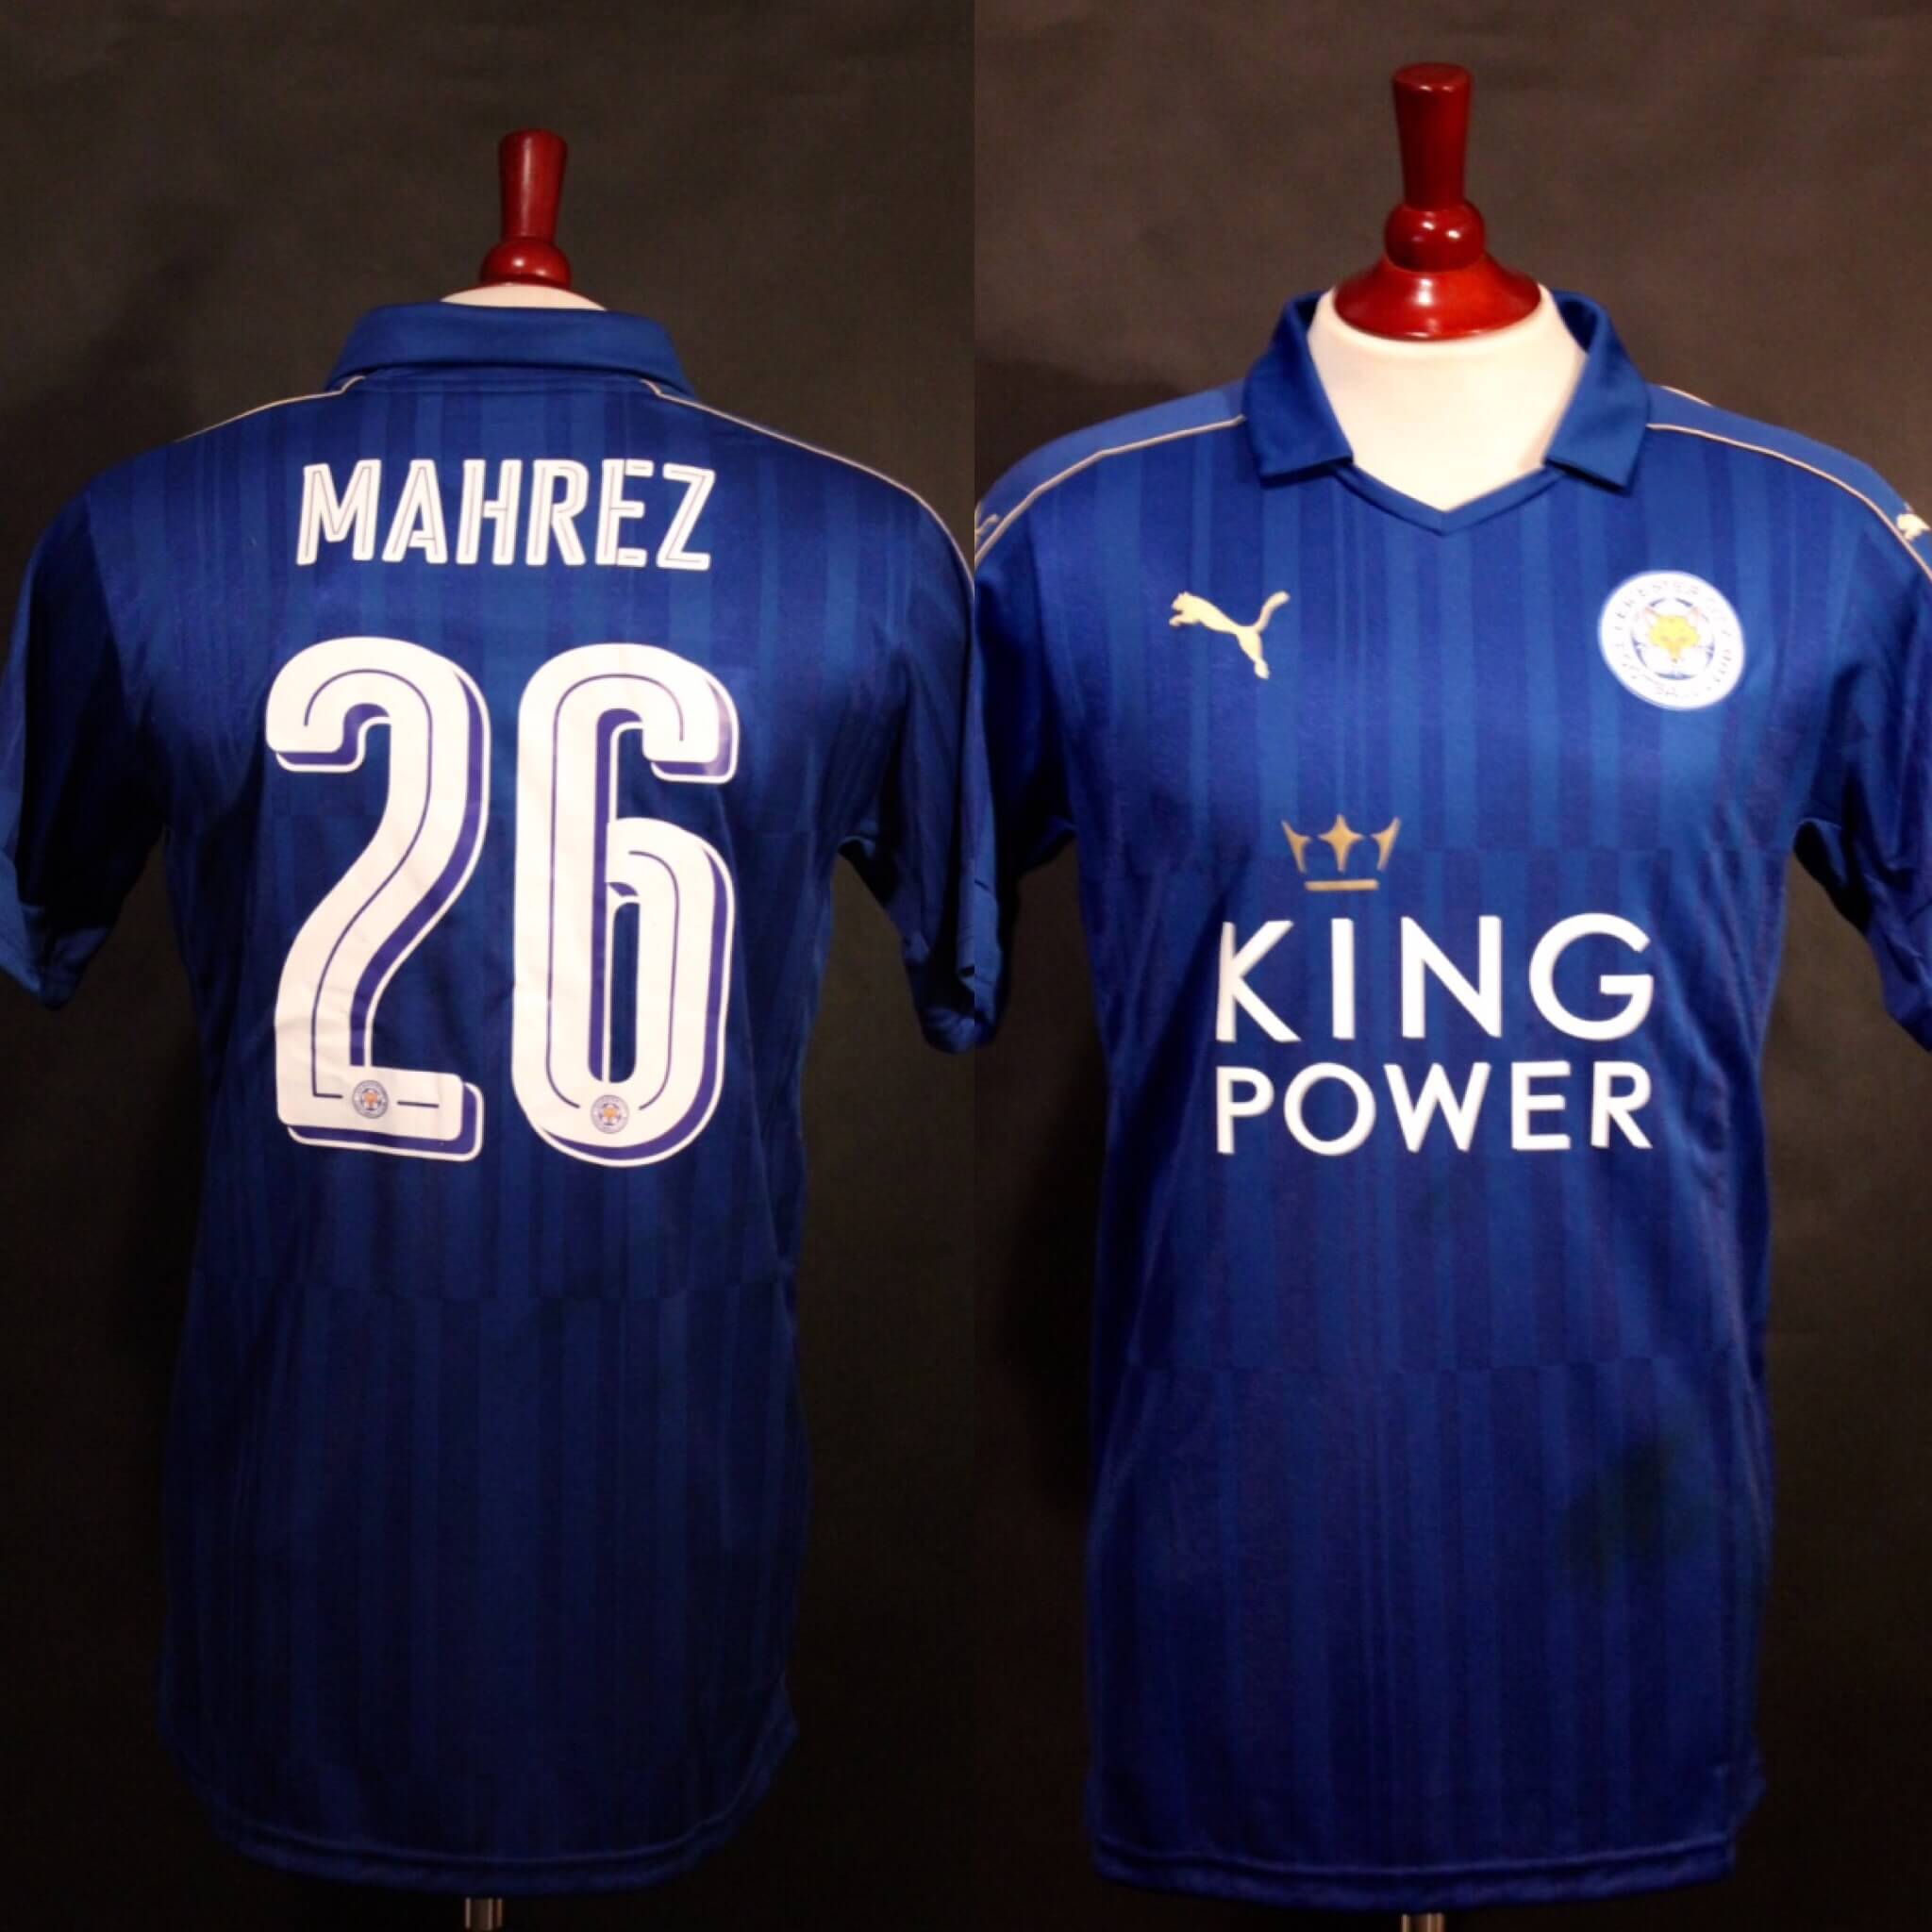 save off 2a021 f036f A Riyad Mahrez Game-Used & Unwashed #26 Leicester City FC Home Shirt.  2016/17 UEFA Champions League.